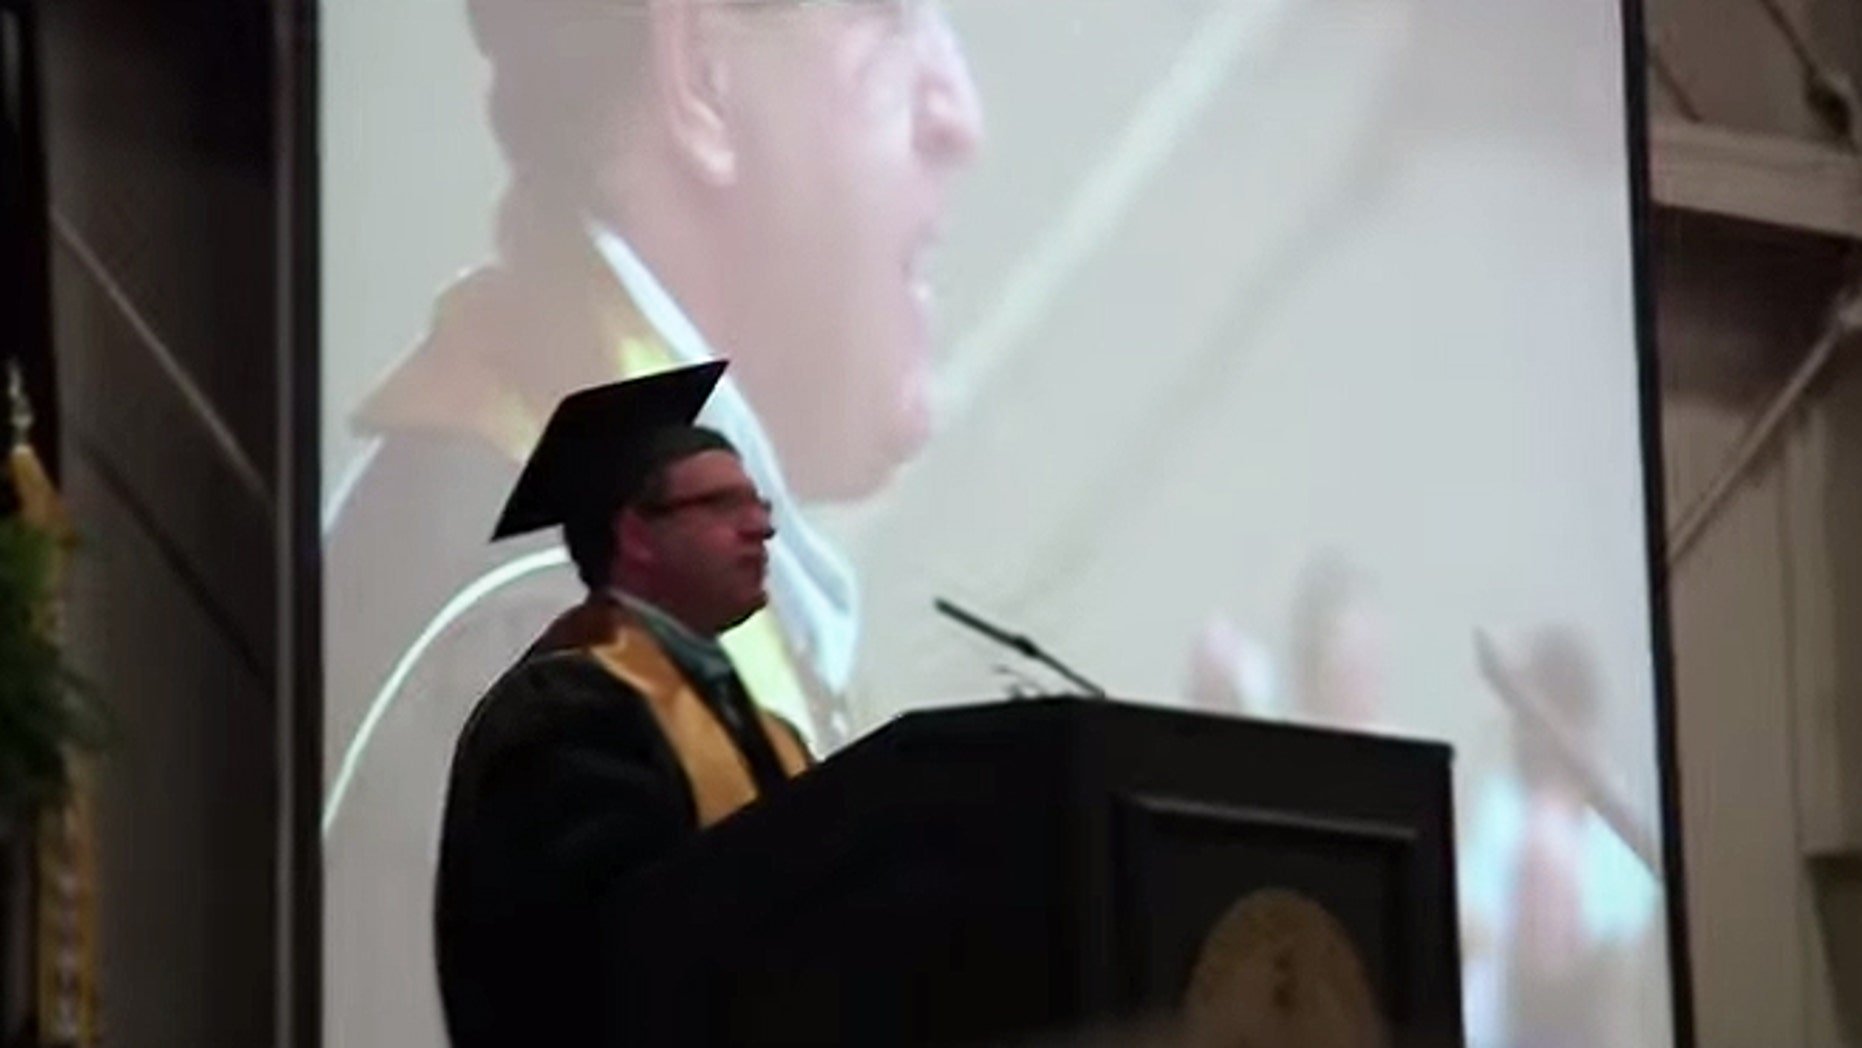 """Lebanon High School Principal Kevin Lowery reminded graduates last month that the nation's motto of """"In God We Trust"""" can be found on U.S. currency and in Francis Scott Key's 1814 version of """"The Star-Spangled Banner."""" Lowery also noted during the May 23 commencement that even though """"God is reflected in the very fabric"""" of the nation, it would be inappropriate and even illegal to mention God or say a prayer at the ceremony. (YouTube)"""